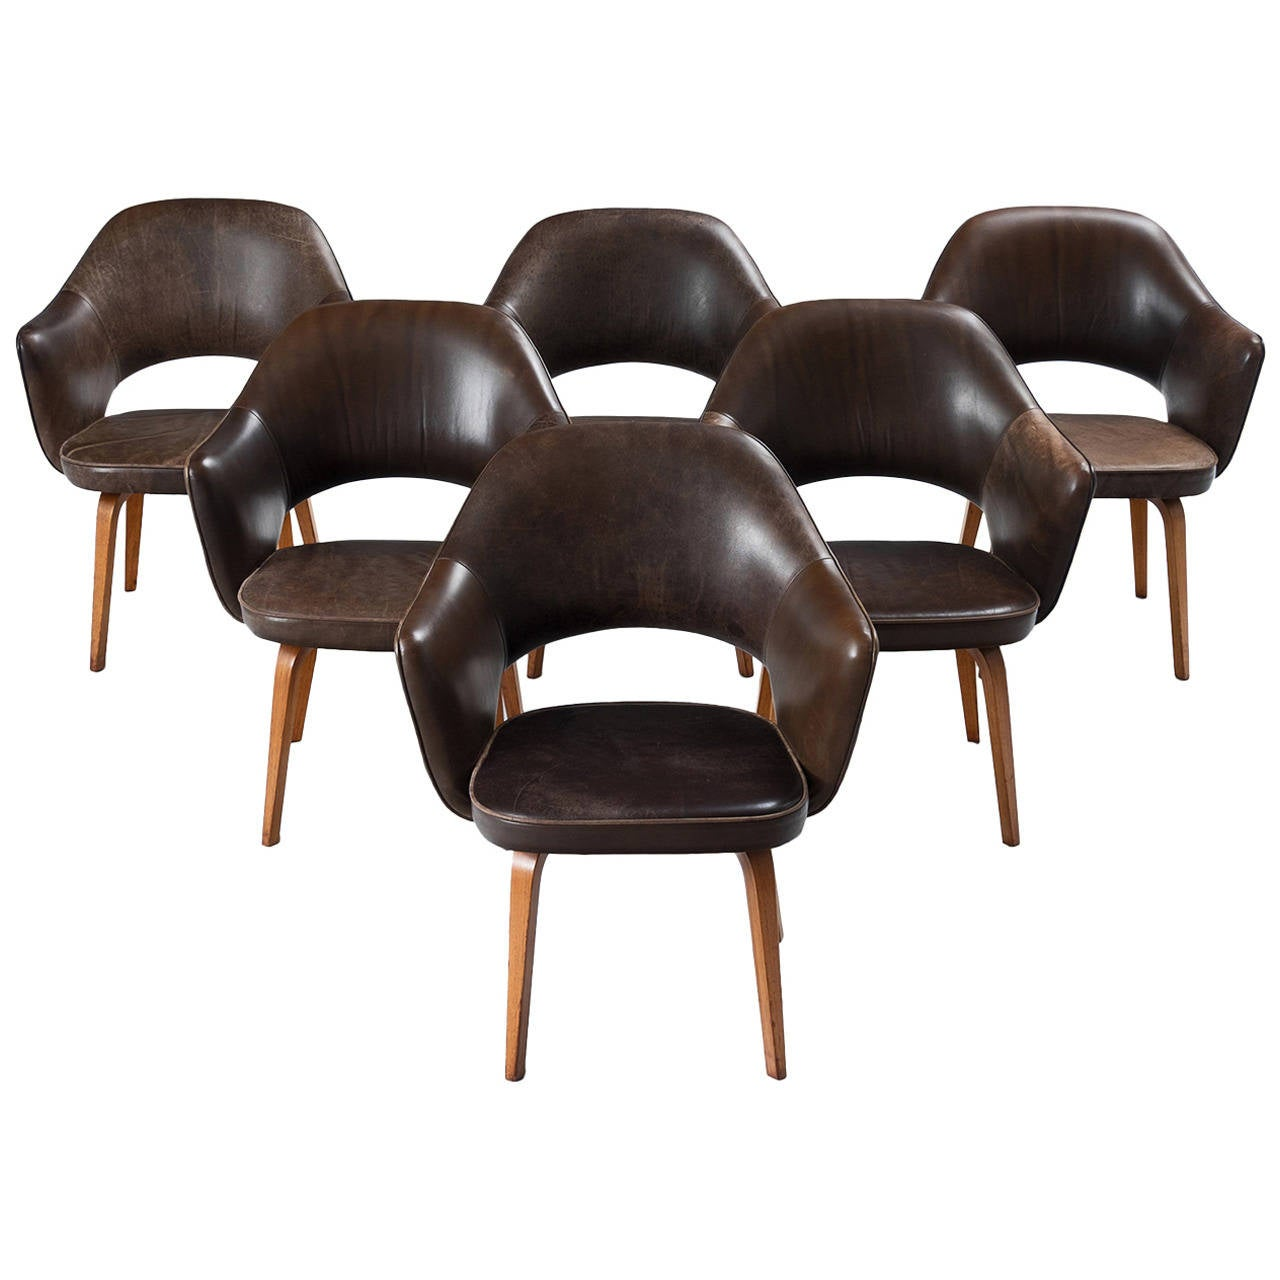 Set of Six Conference Chairs by Eero Saarinen for Knoll